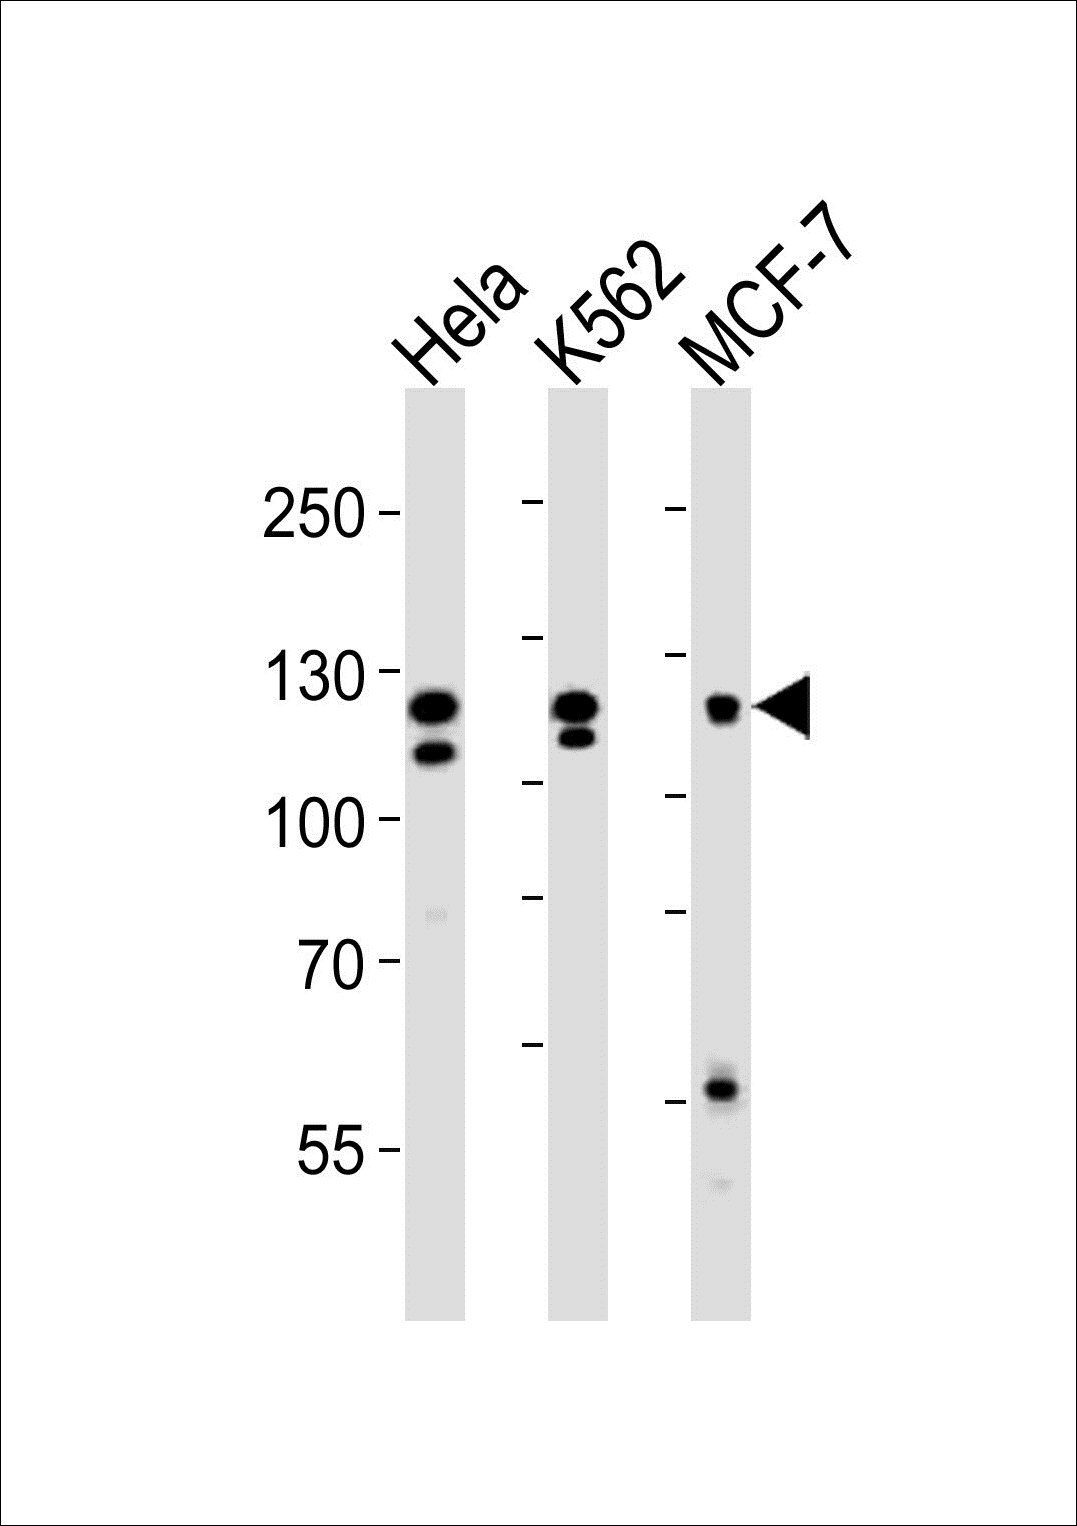 WB analysis of Hela K562 MCF-7 cell line (from left to right) using FGFR2 antibody